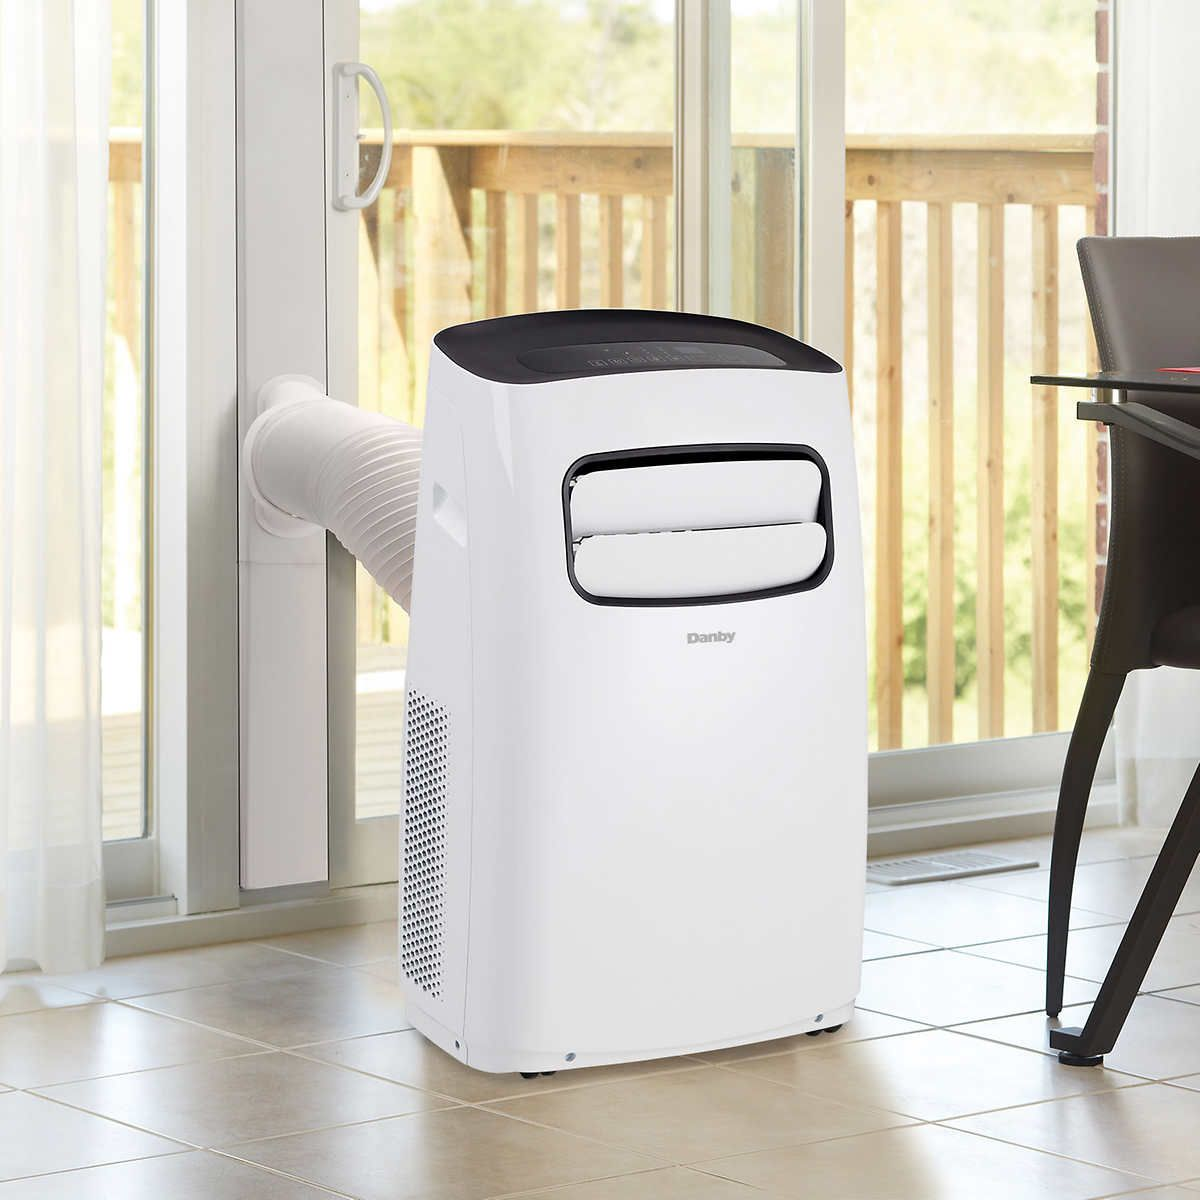 Pin By On Air Condition In 2020 Portable Air Conditioner Window Portable Air Conditioner Portable Air Conditioners